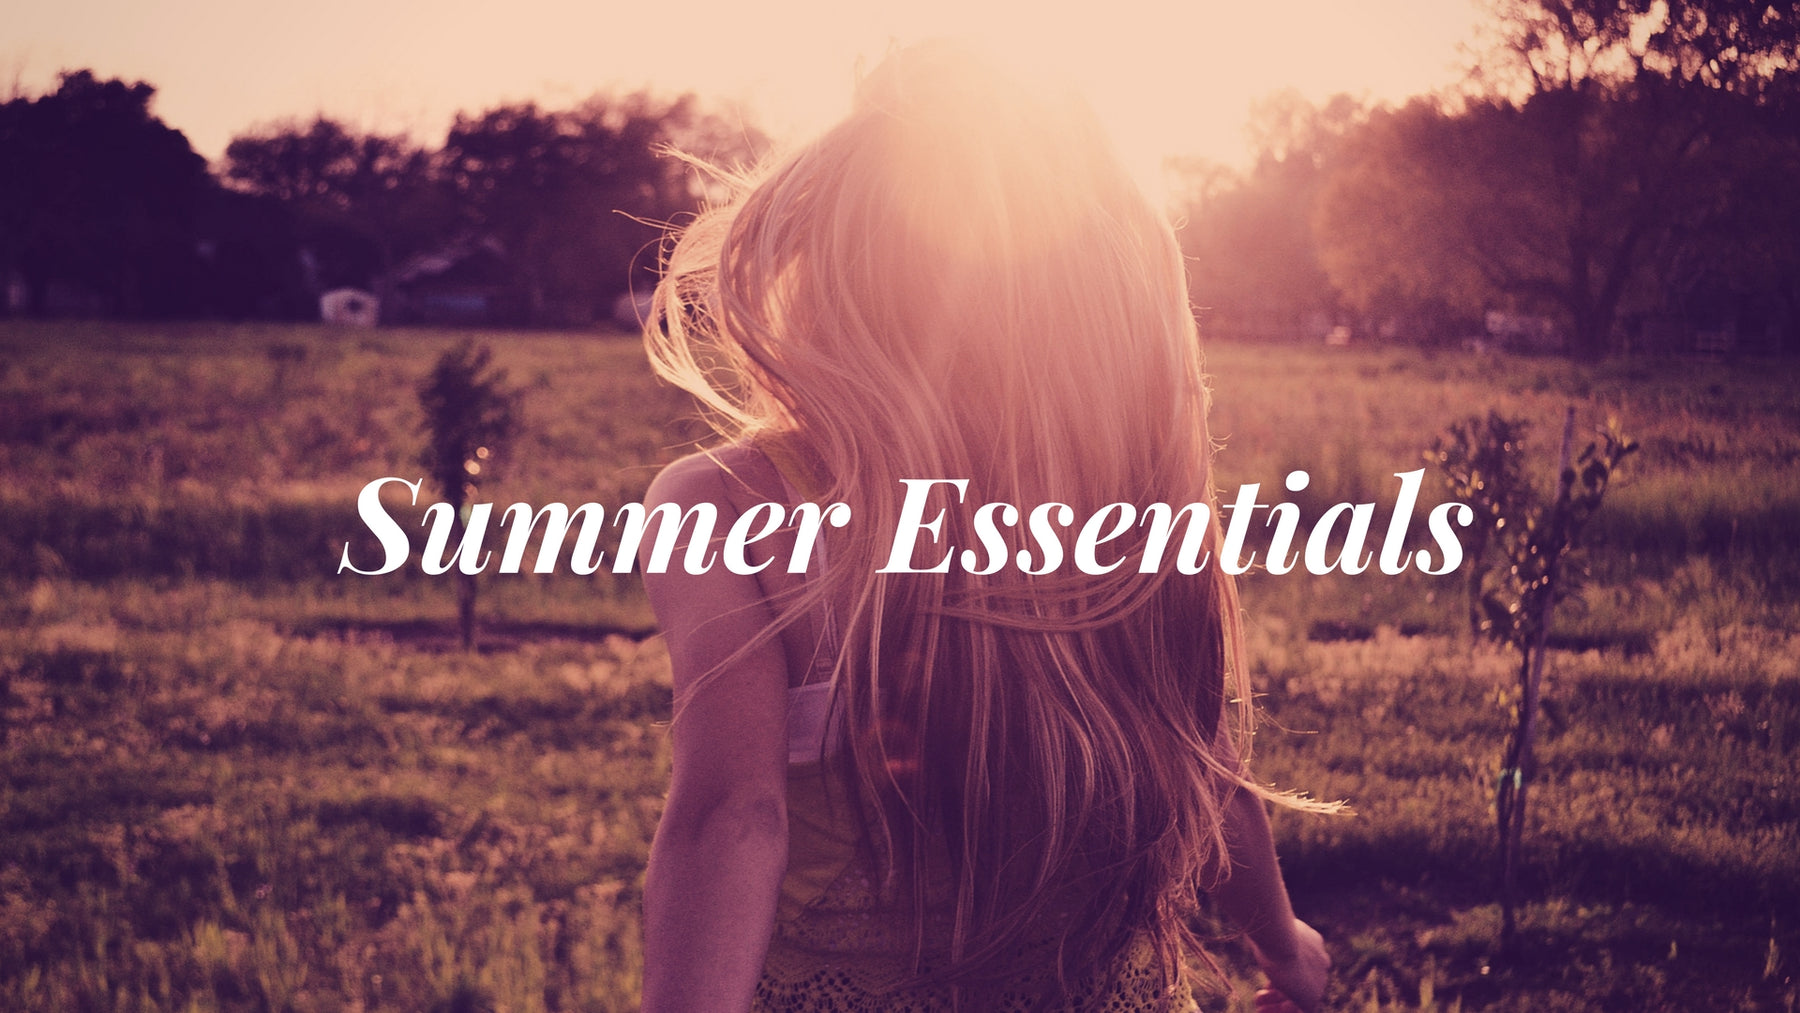 Shop Jacys Summer Essentials